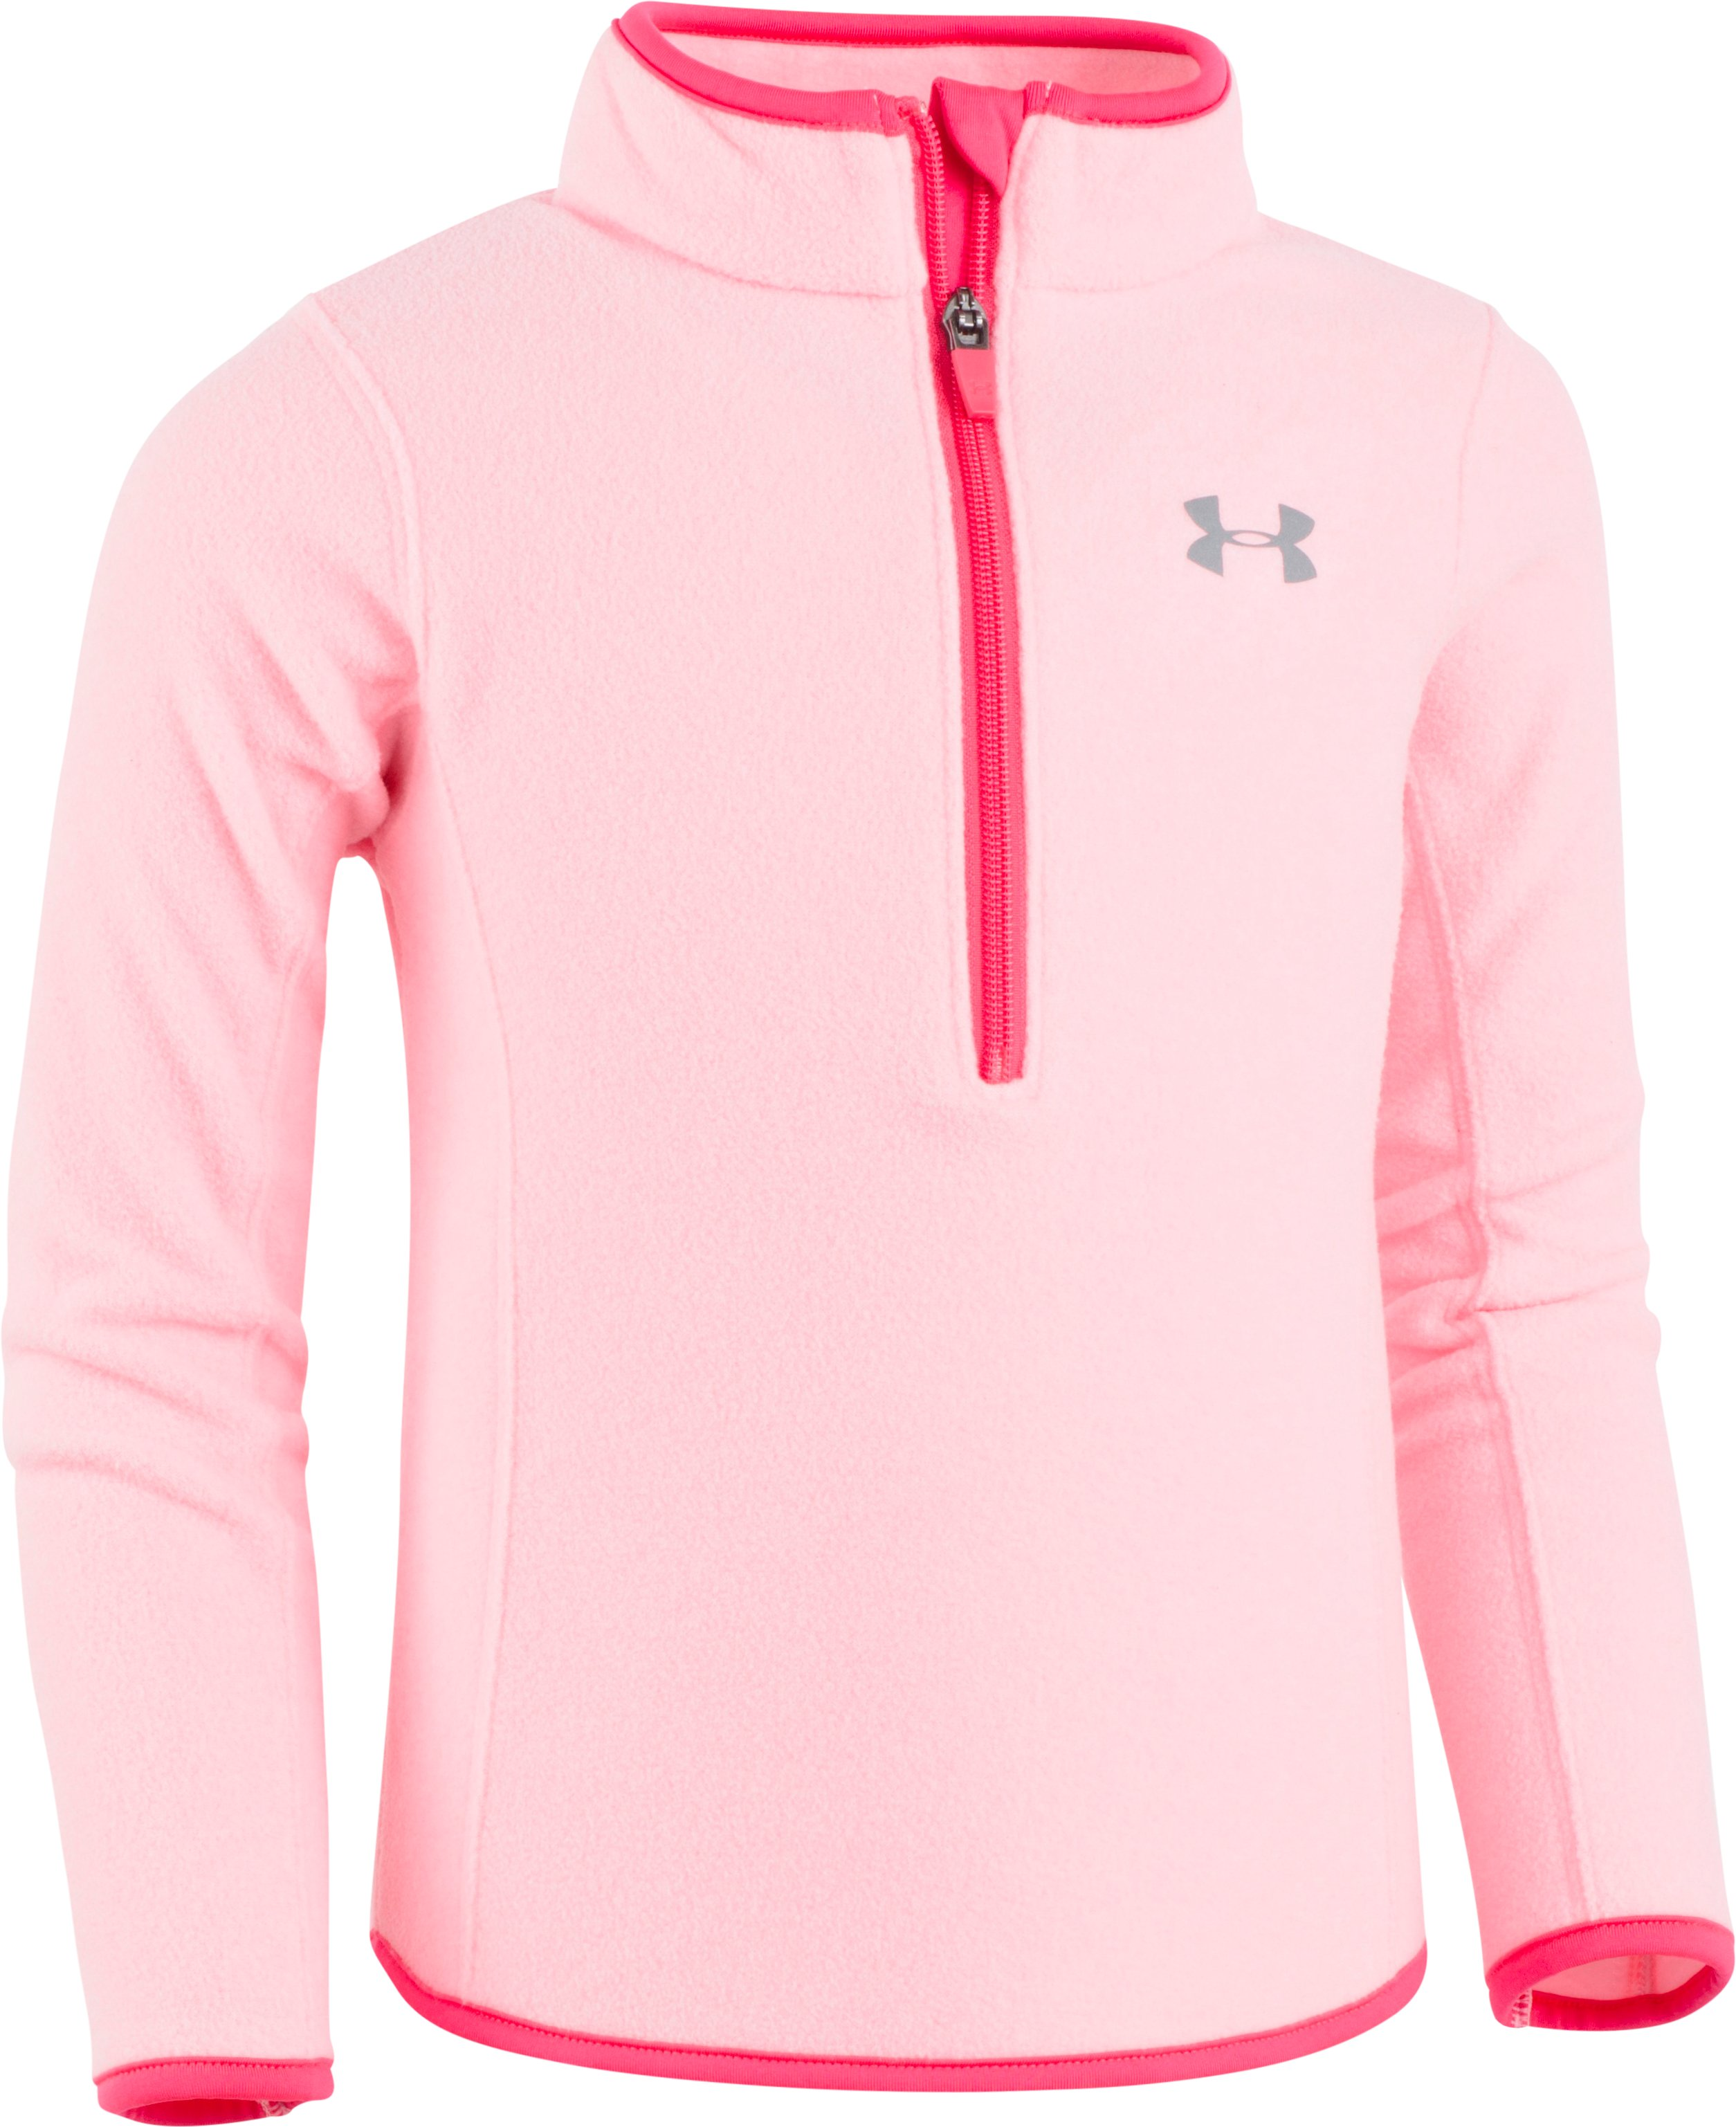 Girls' Pre-School UA Heathered 1/4 Zip, POP PINK FADE HEATHER